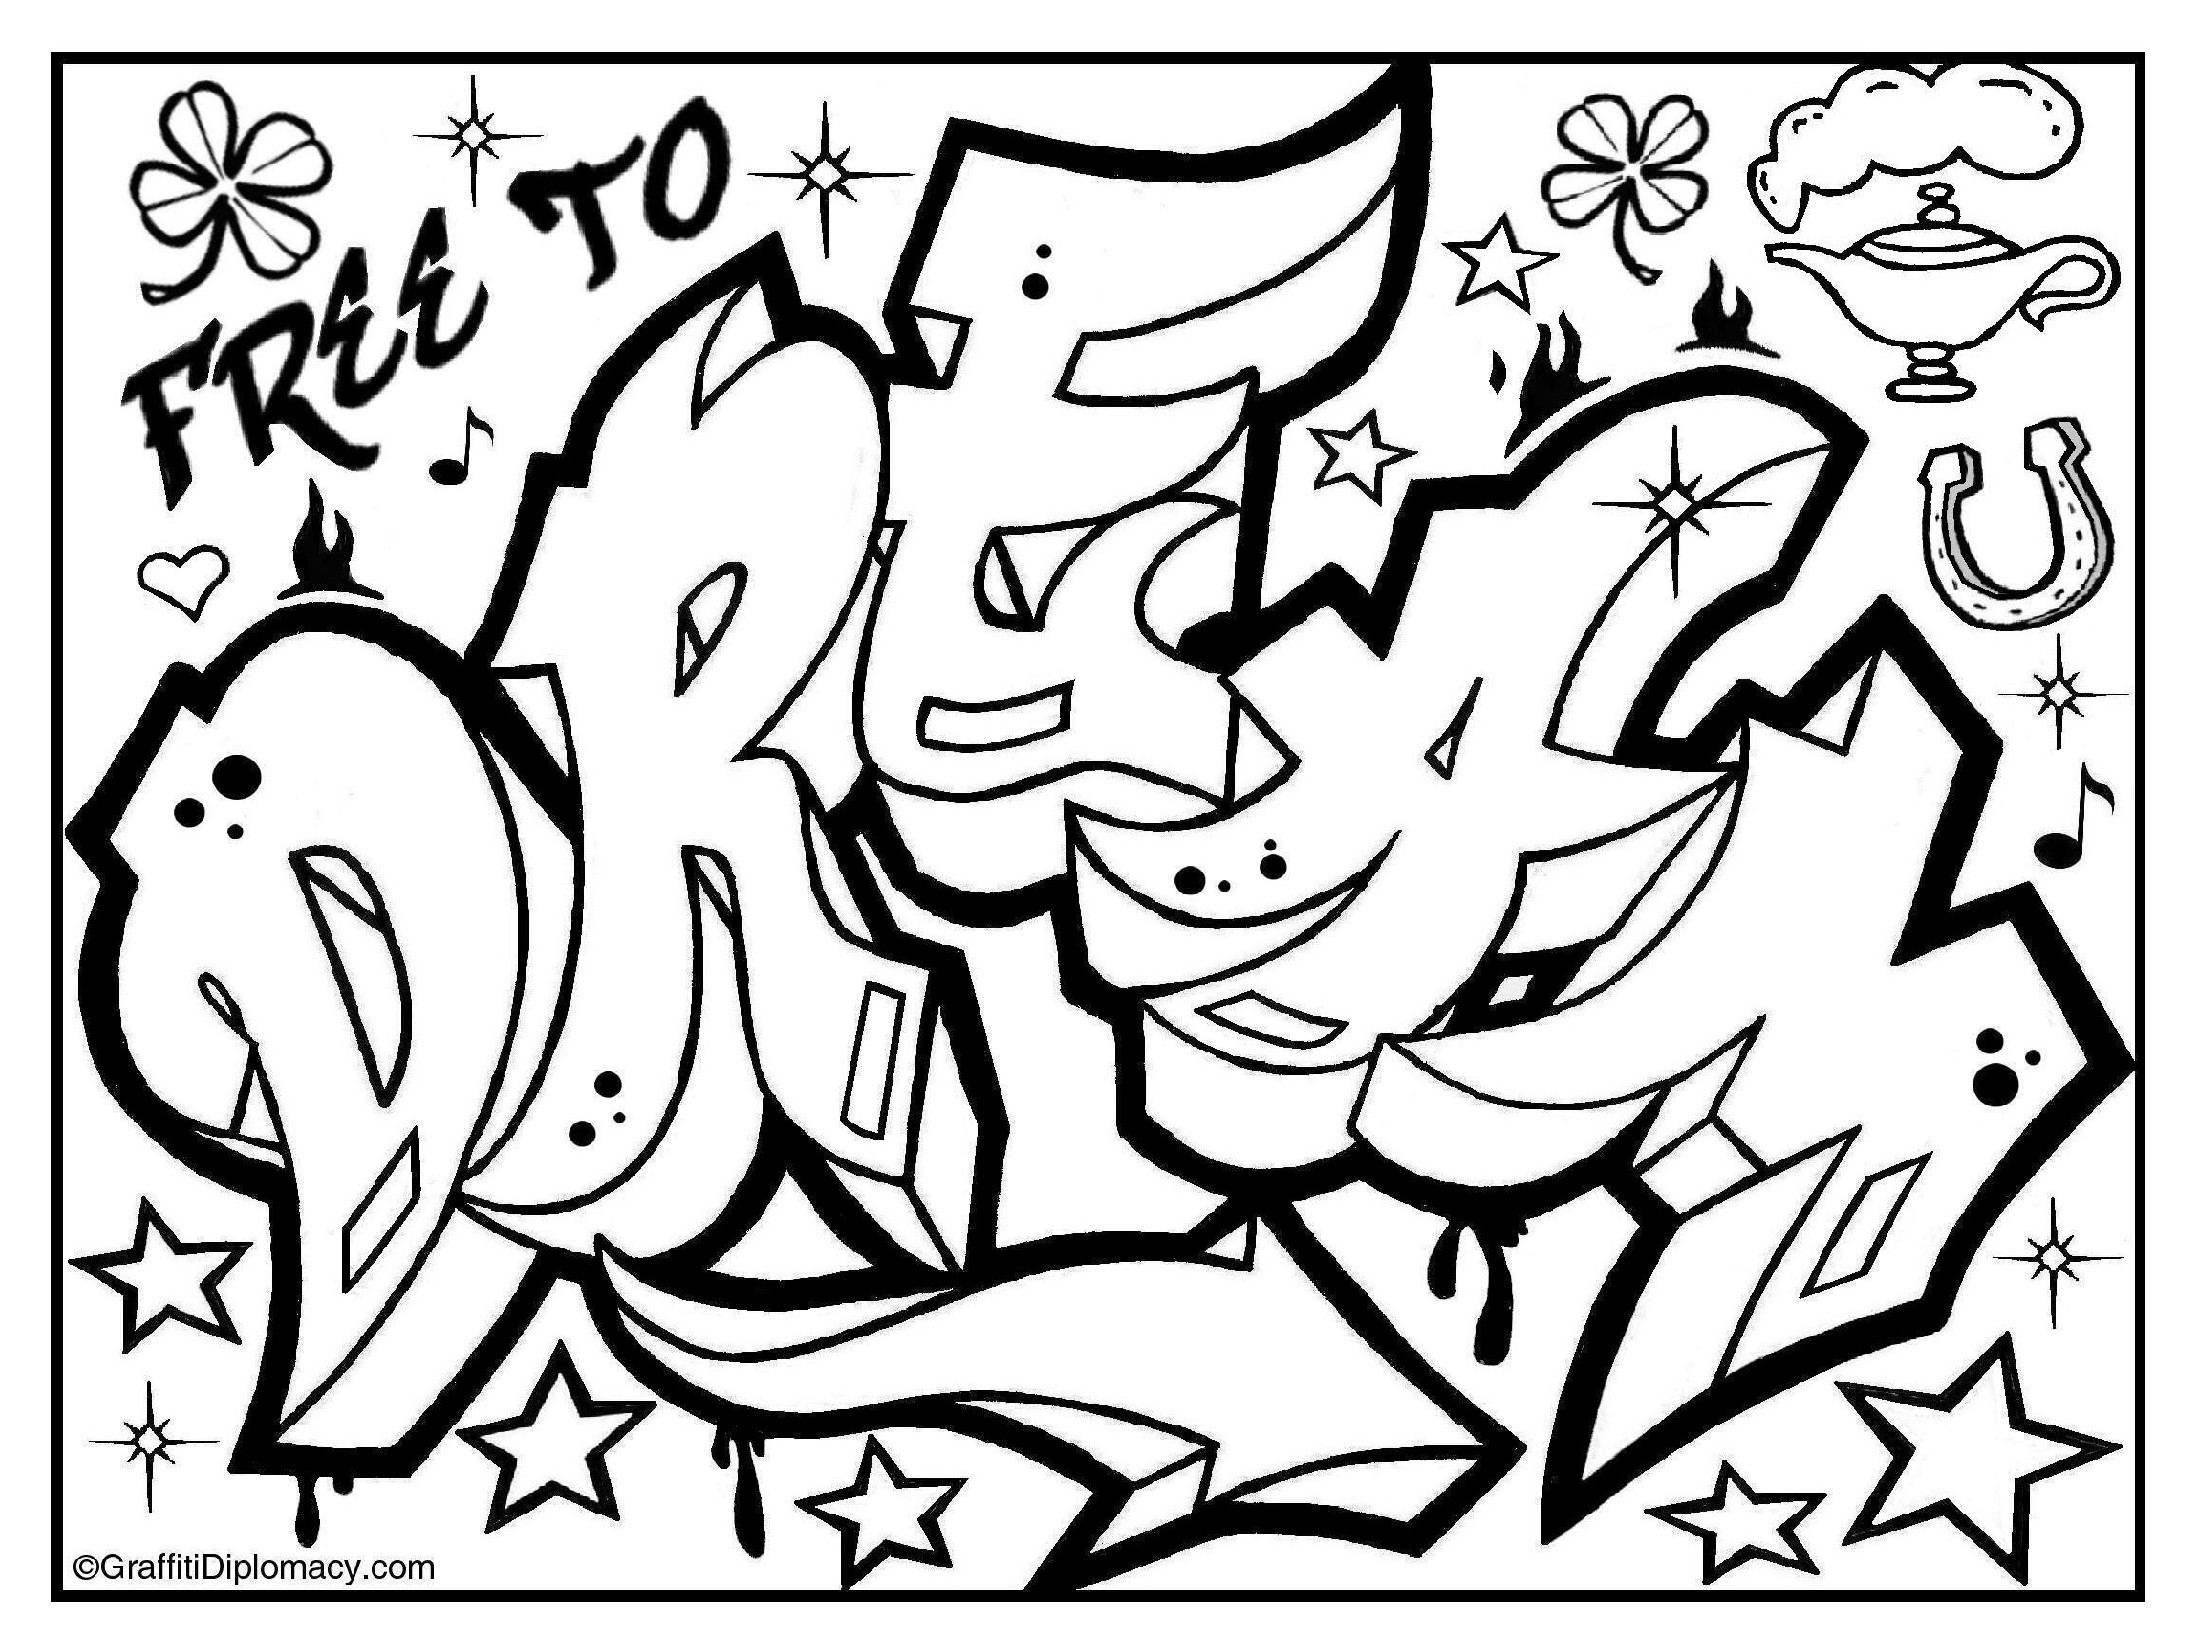 2191x1651 Graffiti Coloring Book Because Y's A Crooked Letter By Graffiti